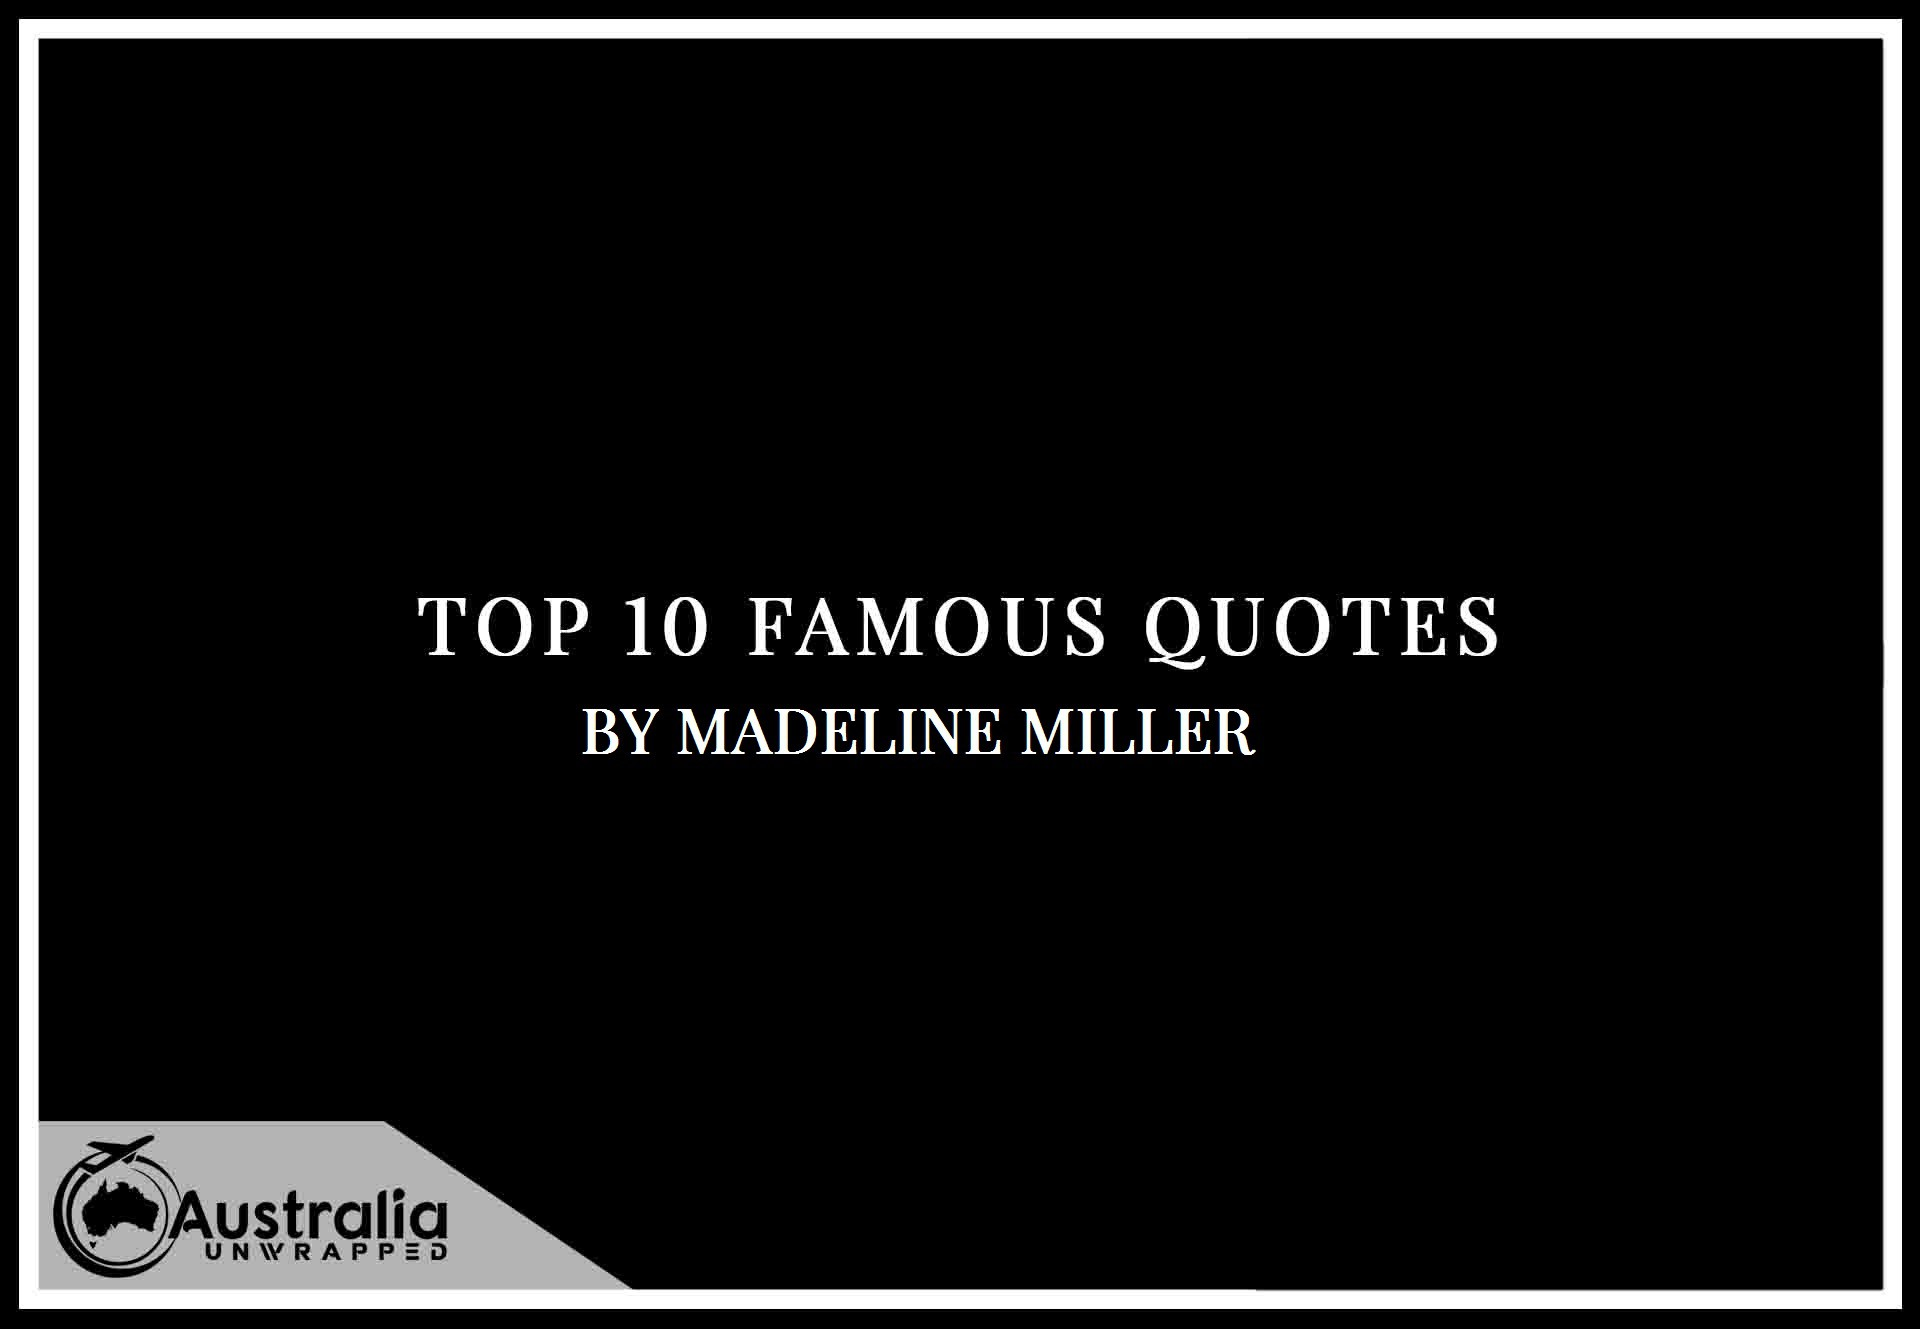 Madeline Miller's Top 10 Popular and Famous Quotes